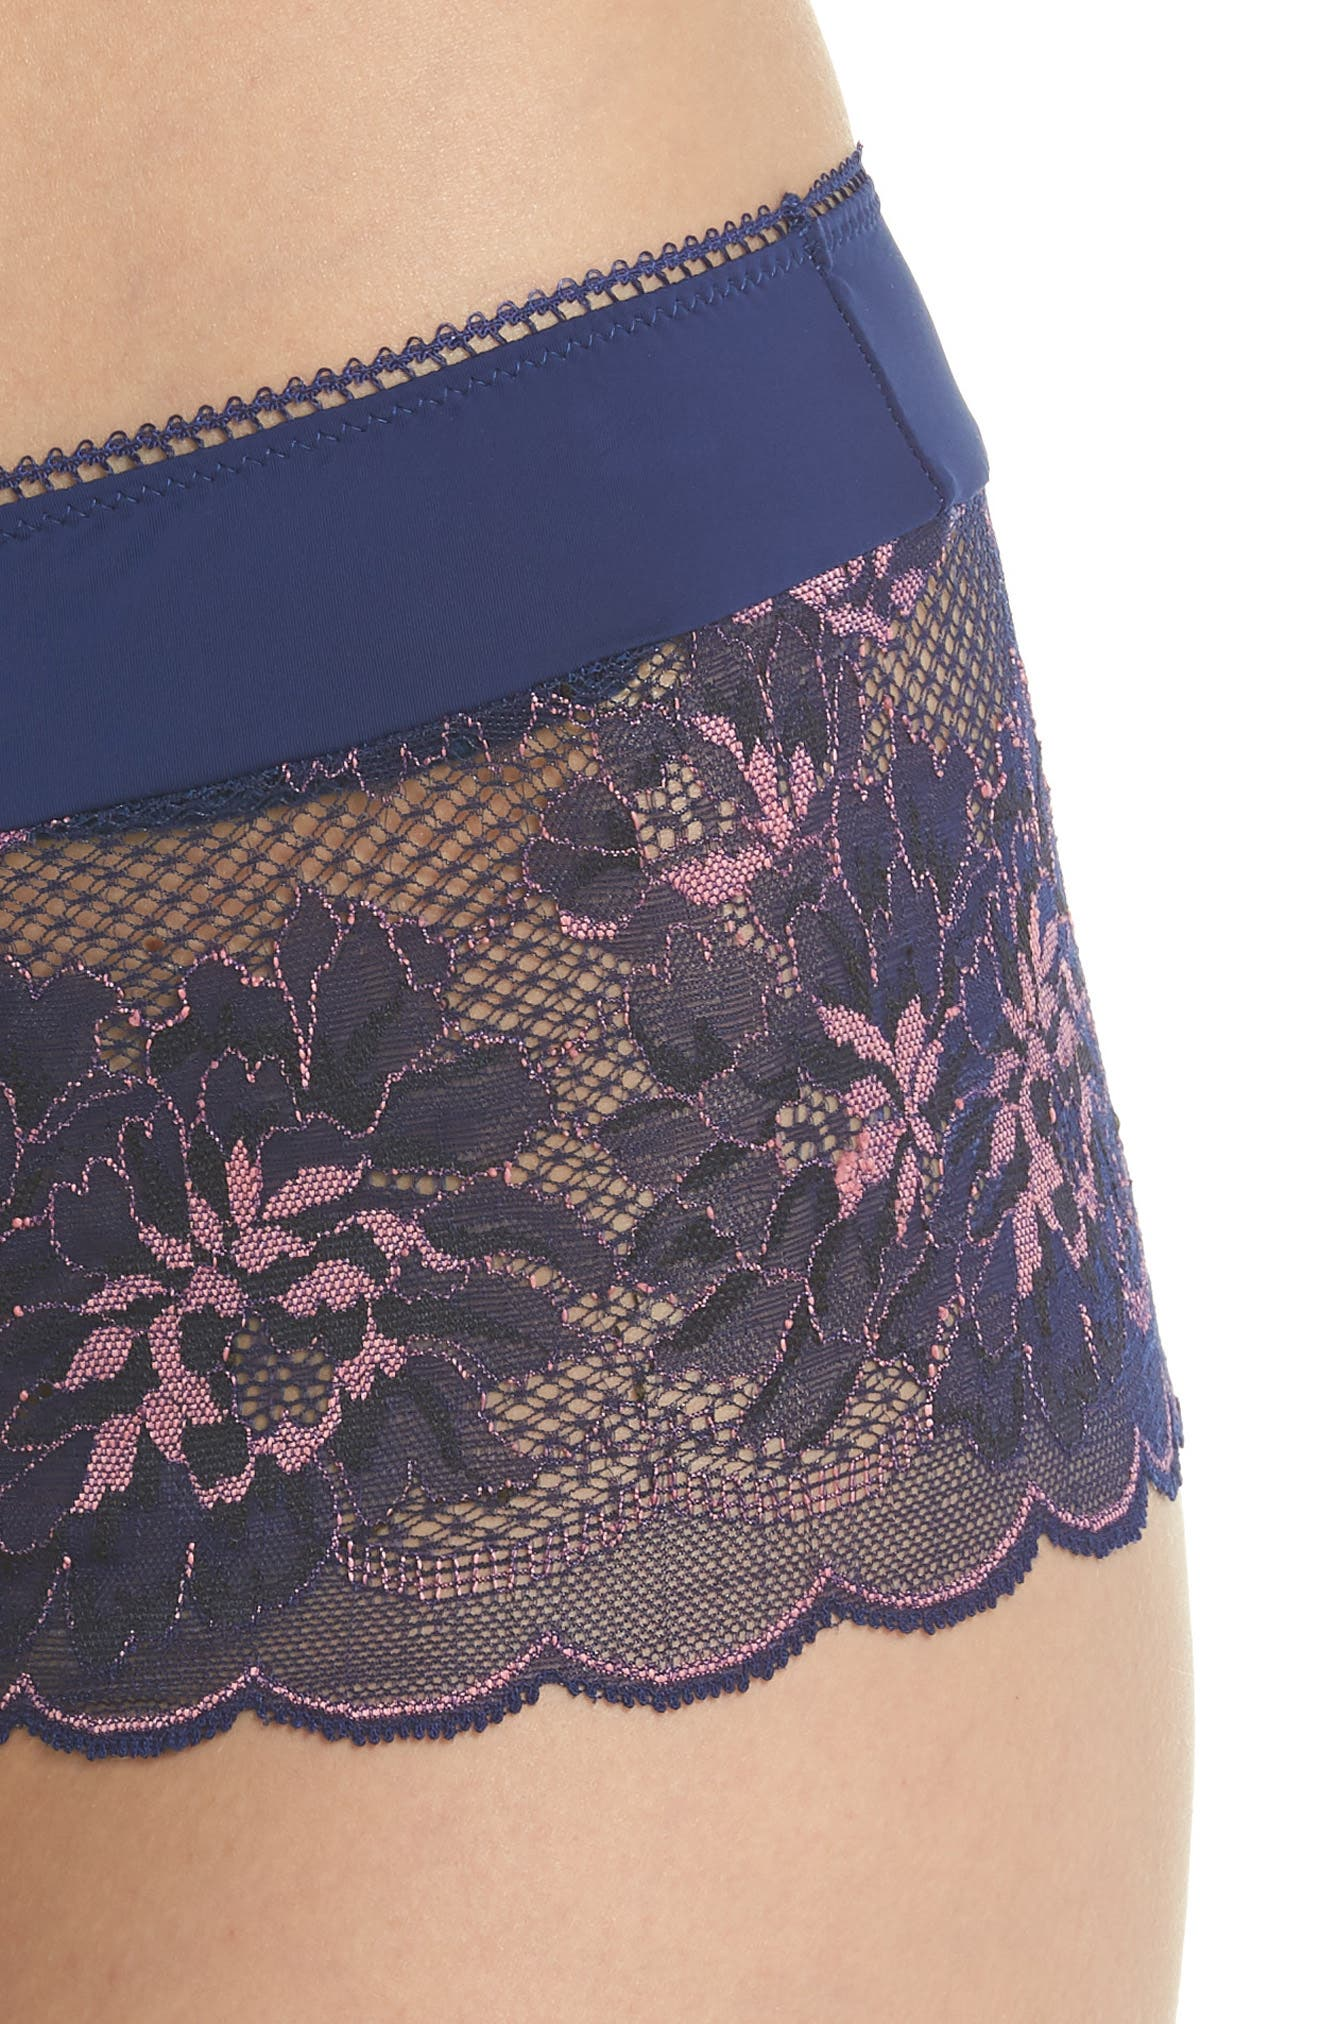 Lace Boyshorts,                             Alternate thumbnail 8, color,                             Blue Depths/ Cameo Pink